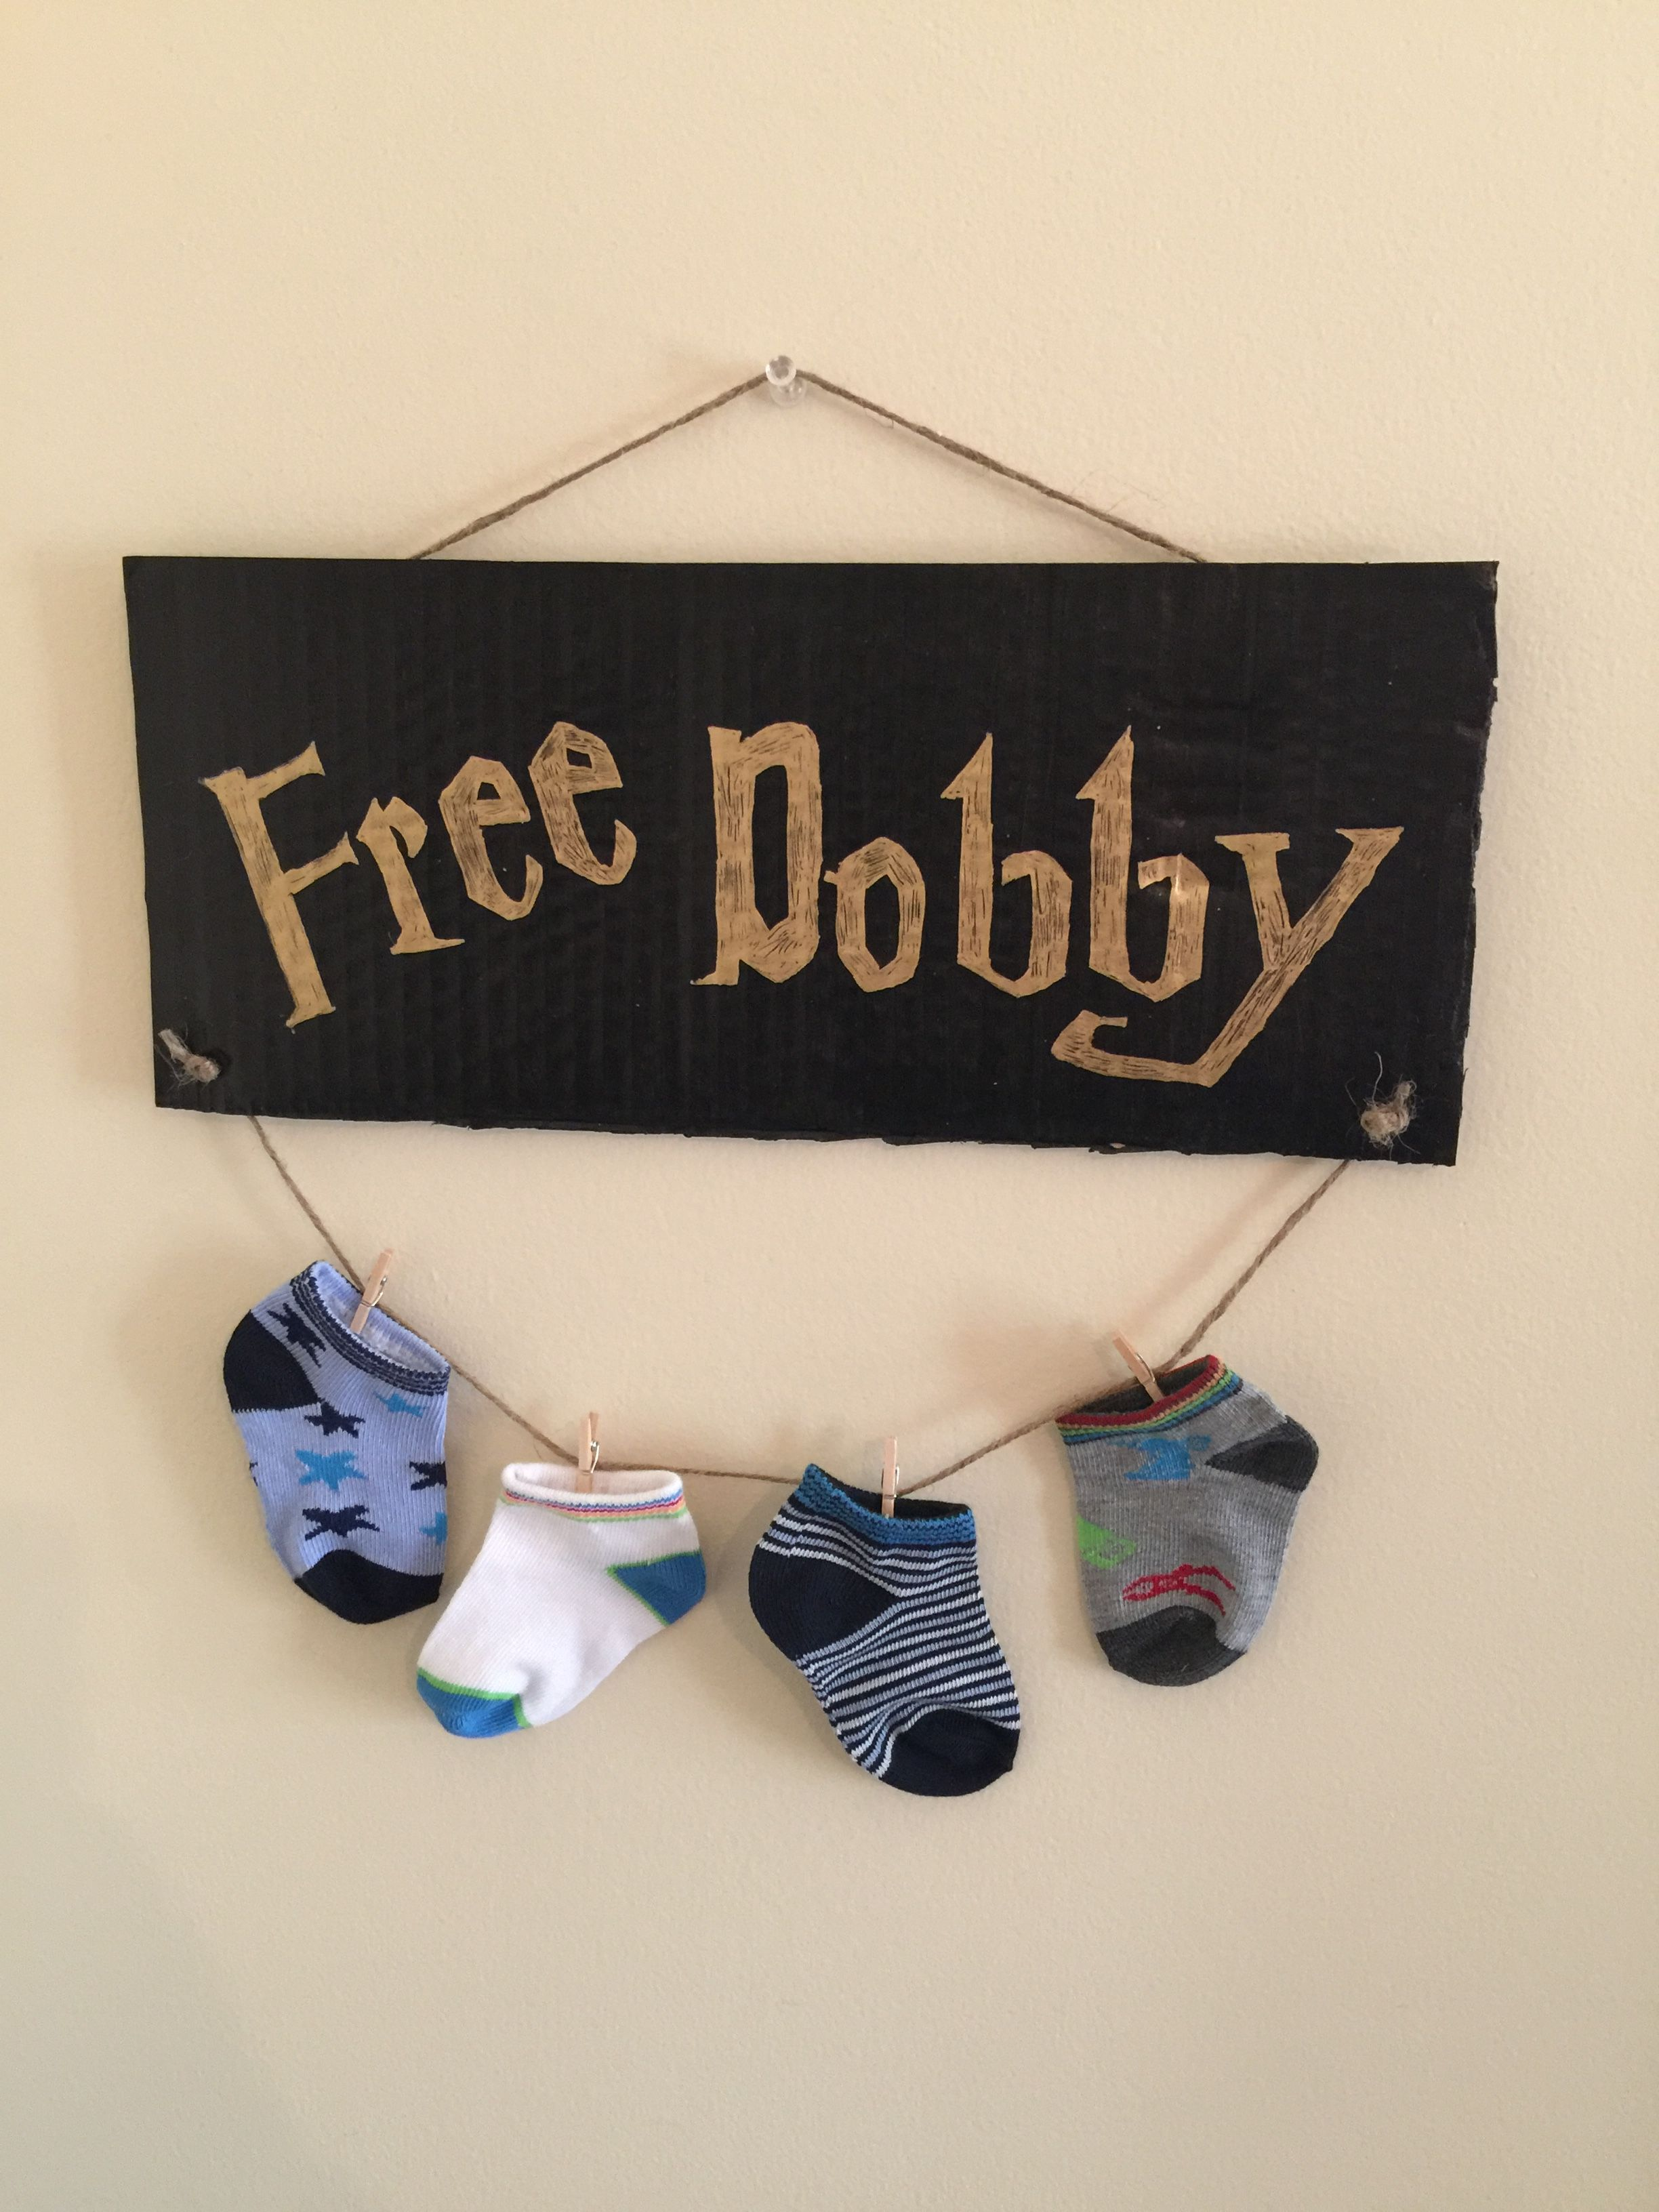 FREE DOBBY Harry Potter DIY simple as a piece of card board black & gold paint! Some twine and baby socks! ❤️